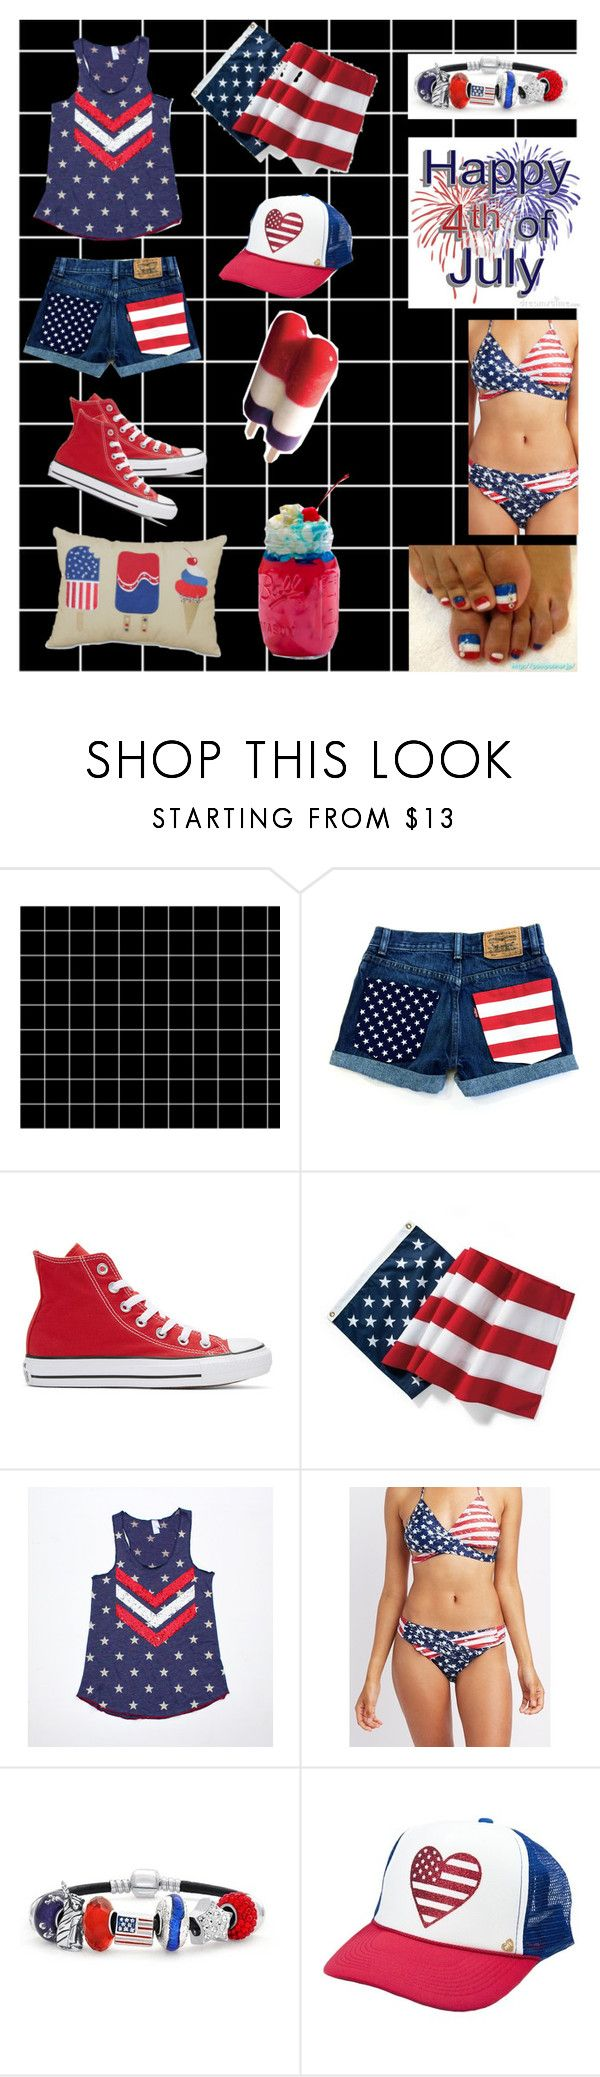 """4th of July!!!"" by echey on Polyvore featuring INDIE HAIR, Converse, Grandin Road, Charlotte Russe, Bling Jewelry and Mother Trucker"